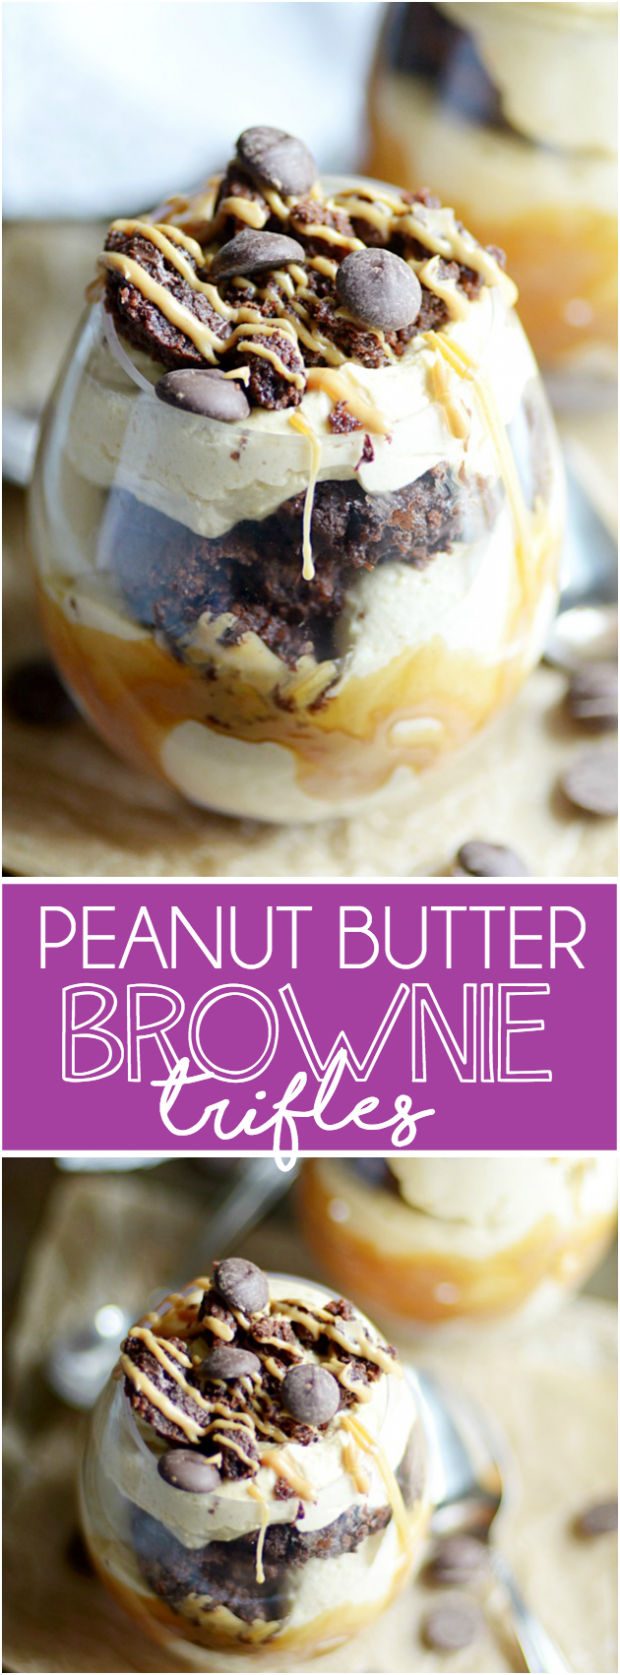 Fudgy chocolate brownie bites layered in cool, creamy peanut butter mousse. You won't believe how good this is and how easy it is to make!!